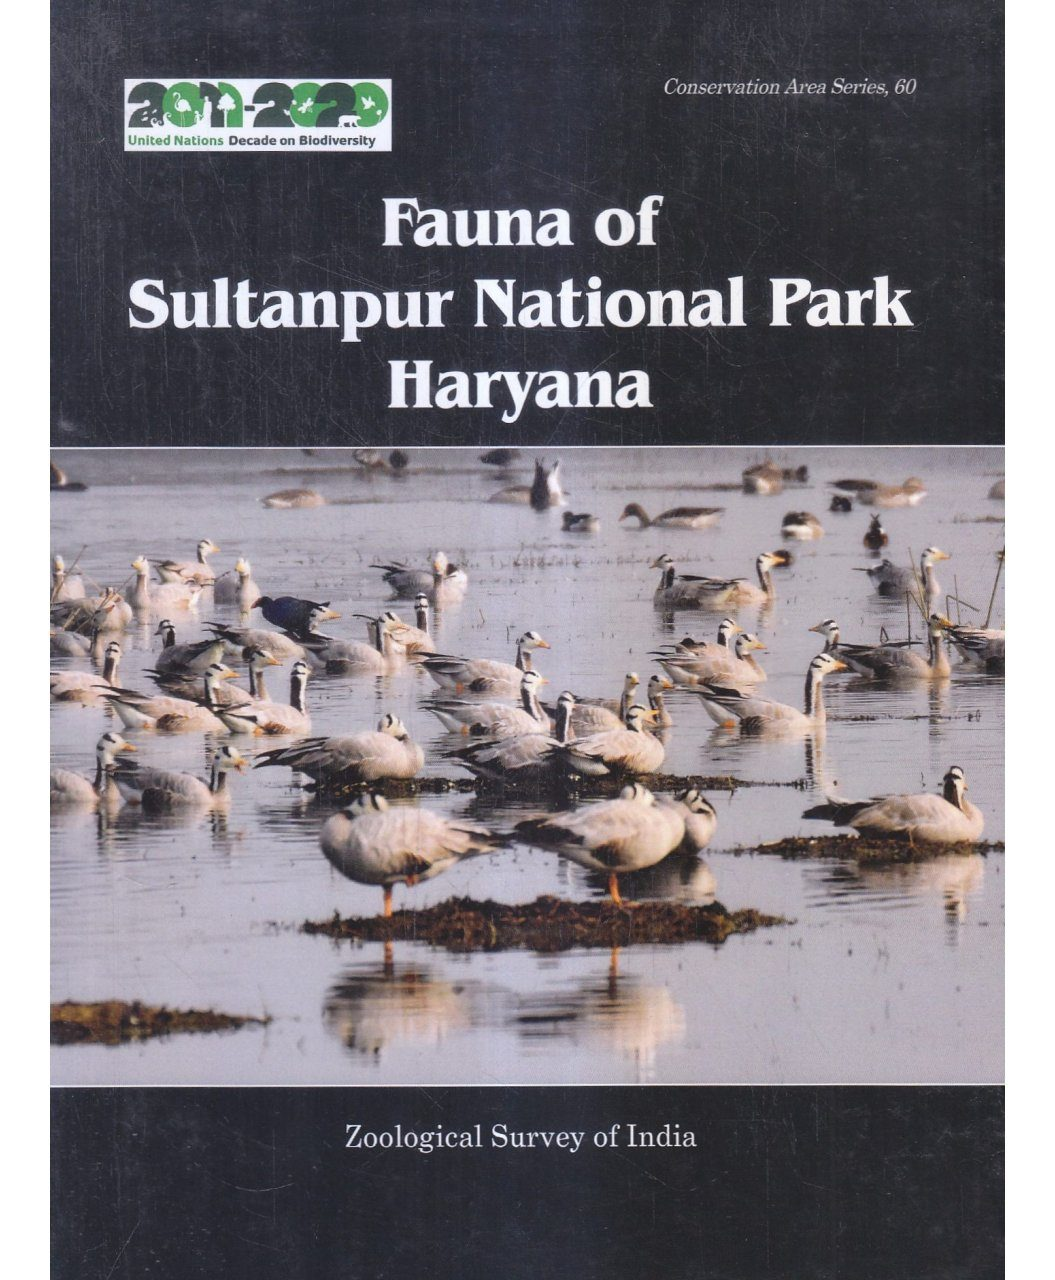 Fauna of Sultanpur National Park Haryana